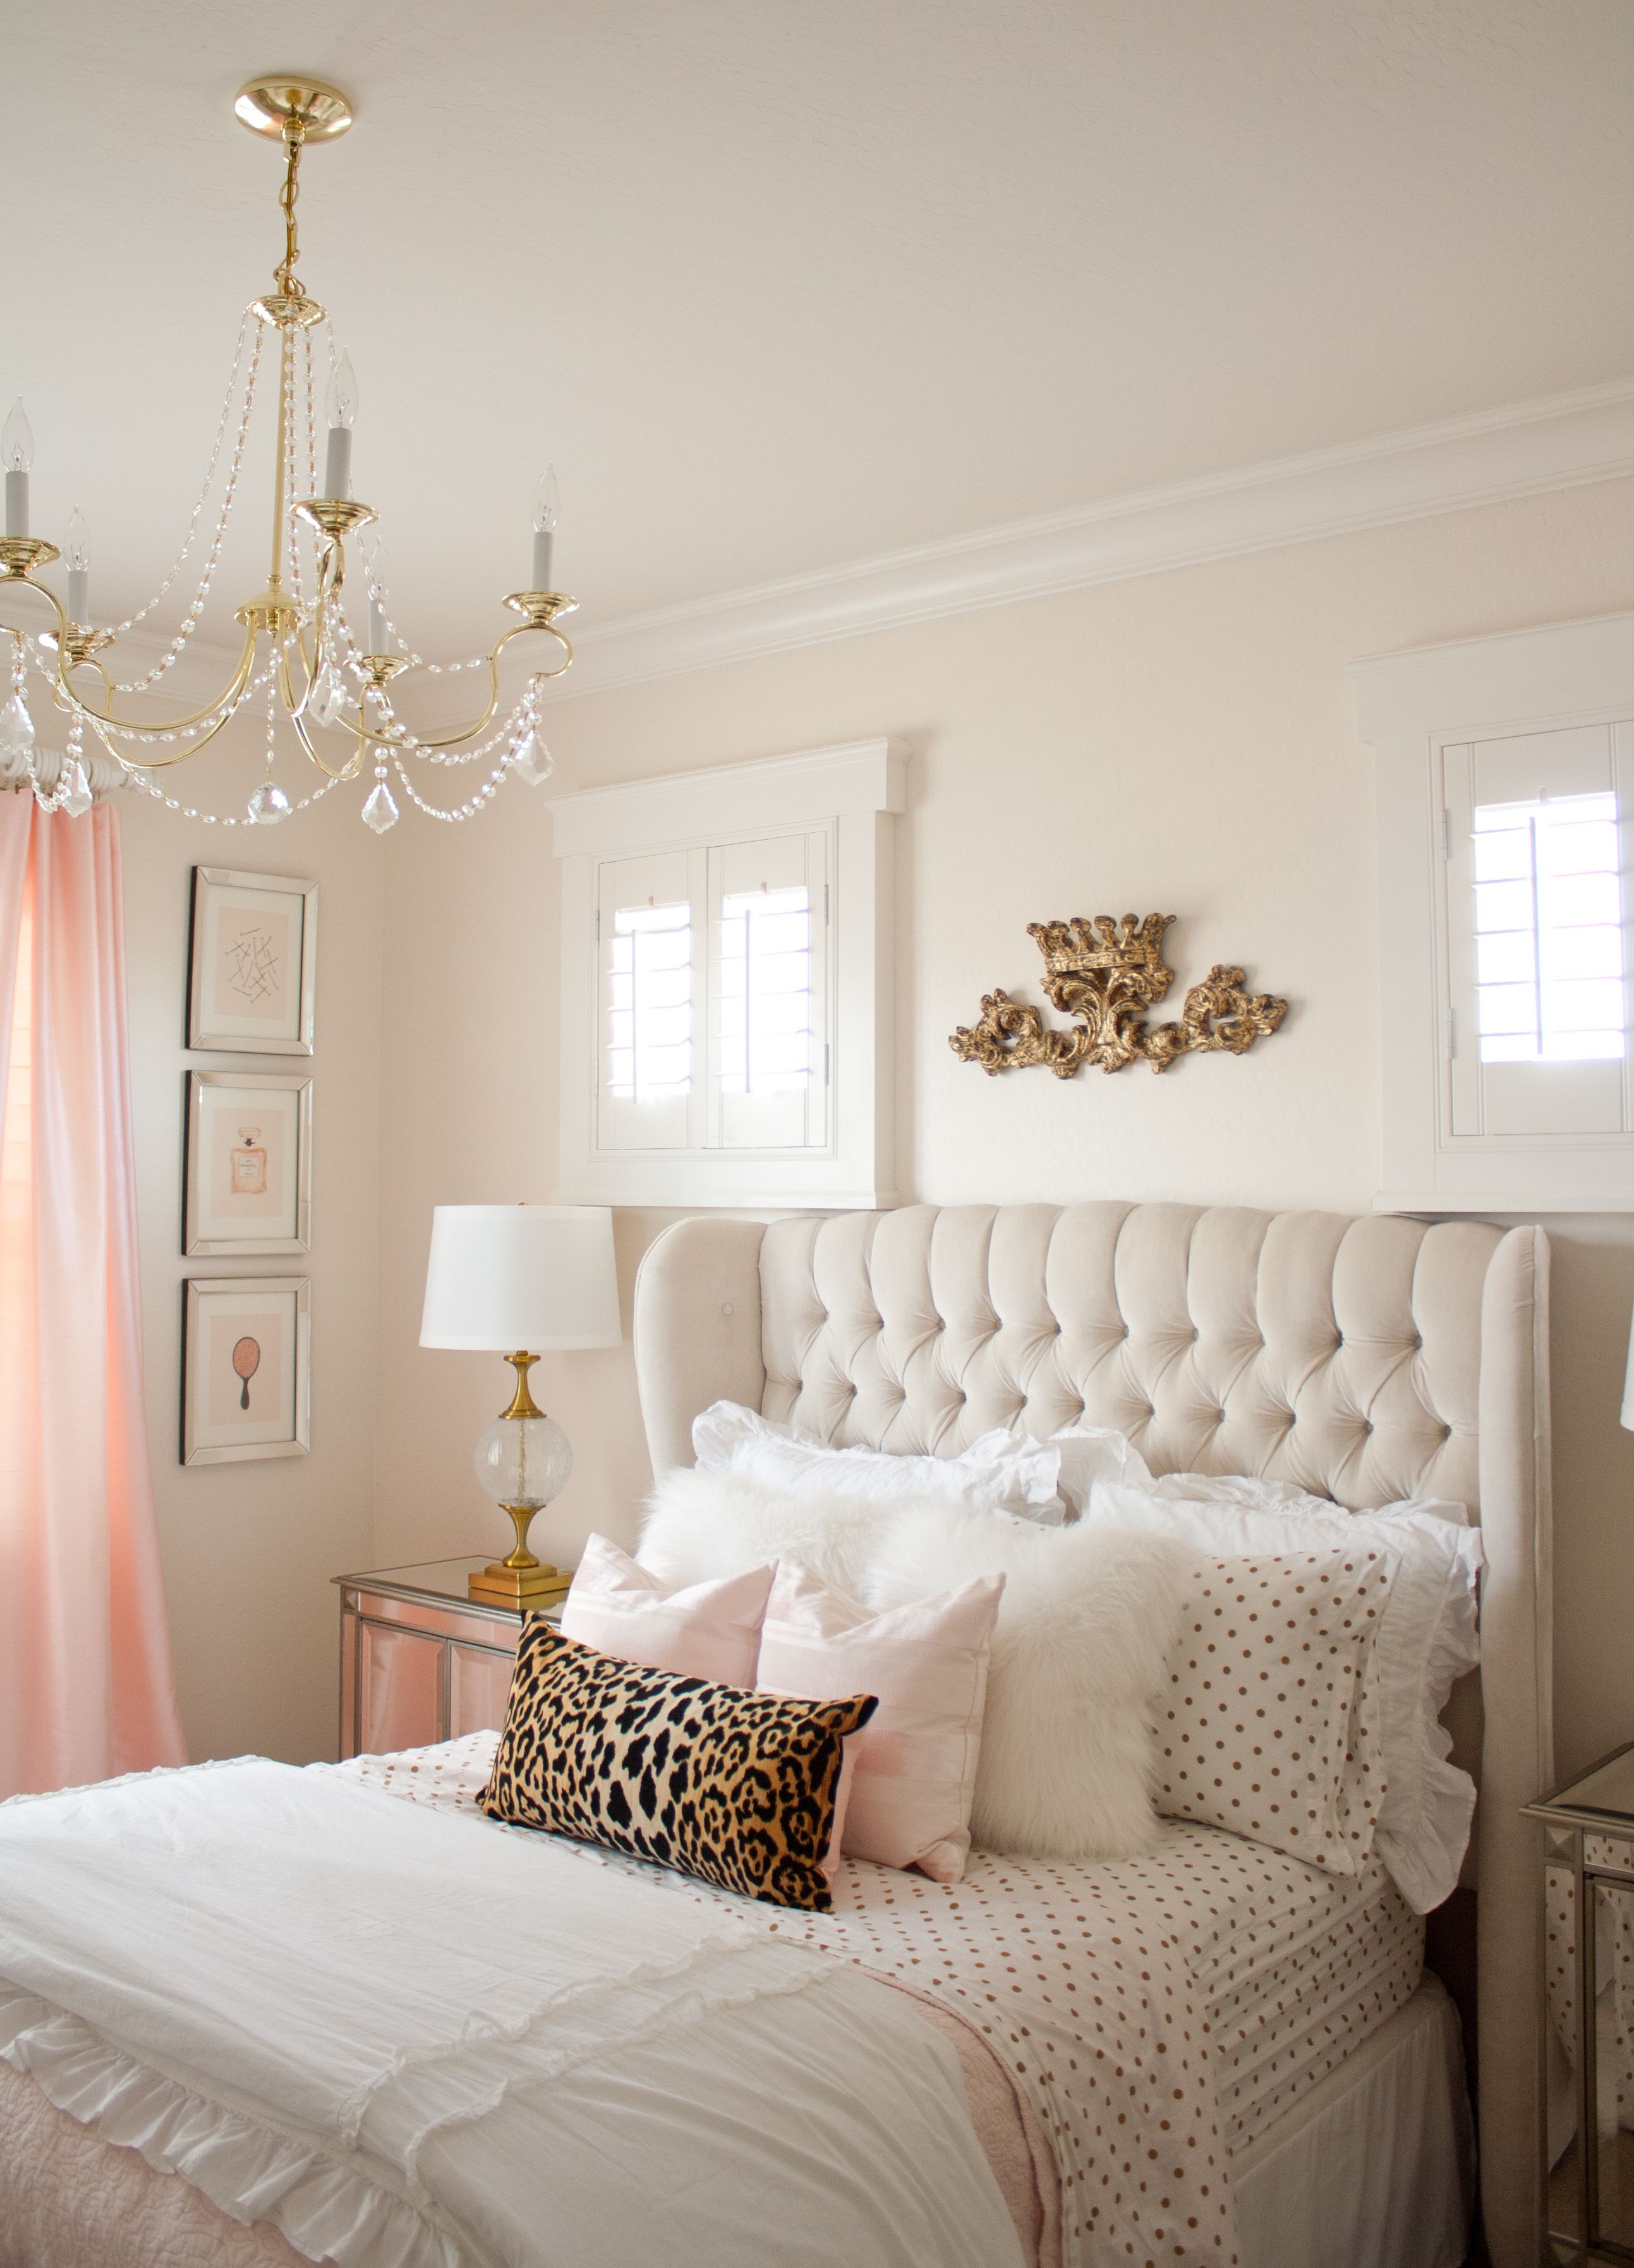 Pink and gold bedroom by Randi Garrett Design with gold polka dot